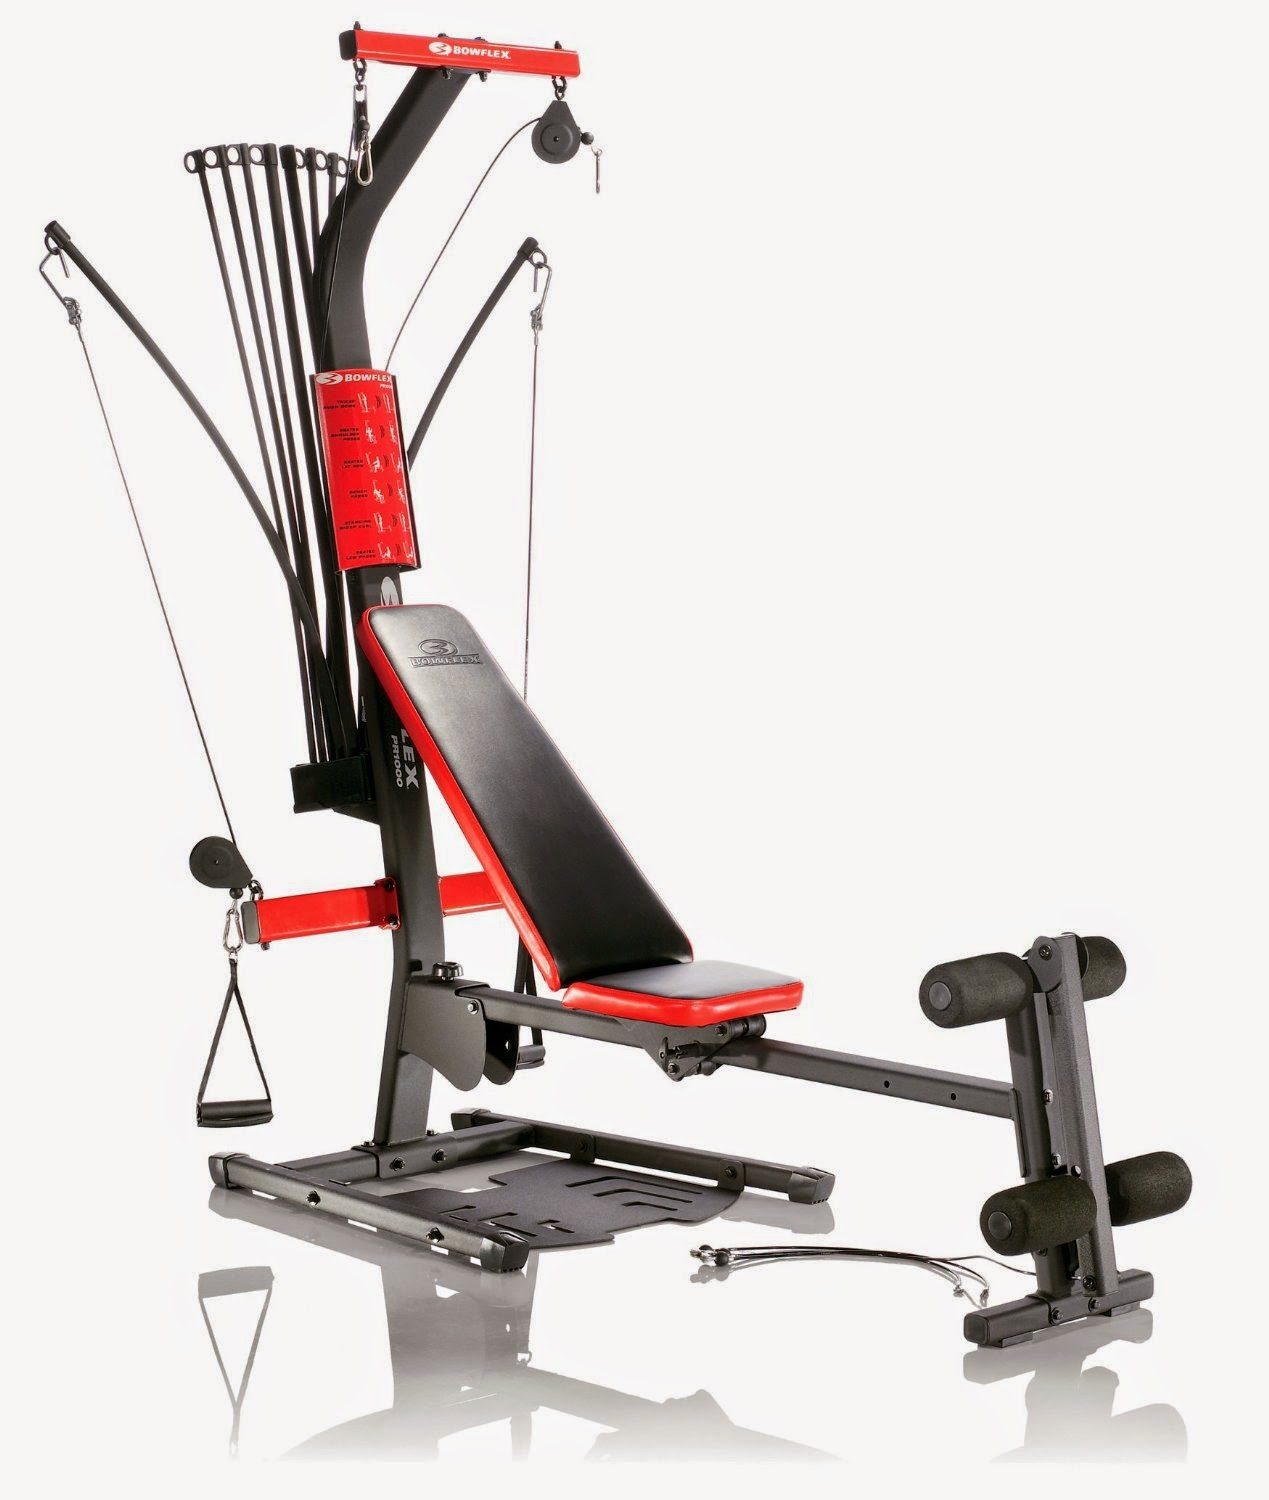 Home Exercise Equipment Price: Health And Fitness Den: Bowflex PR1000 Versus Bowflex